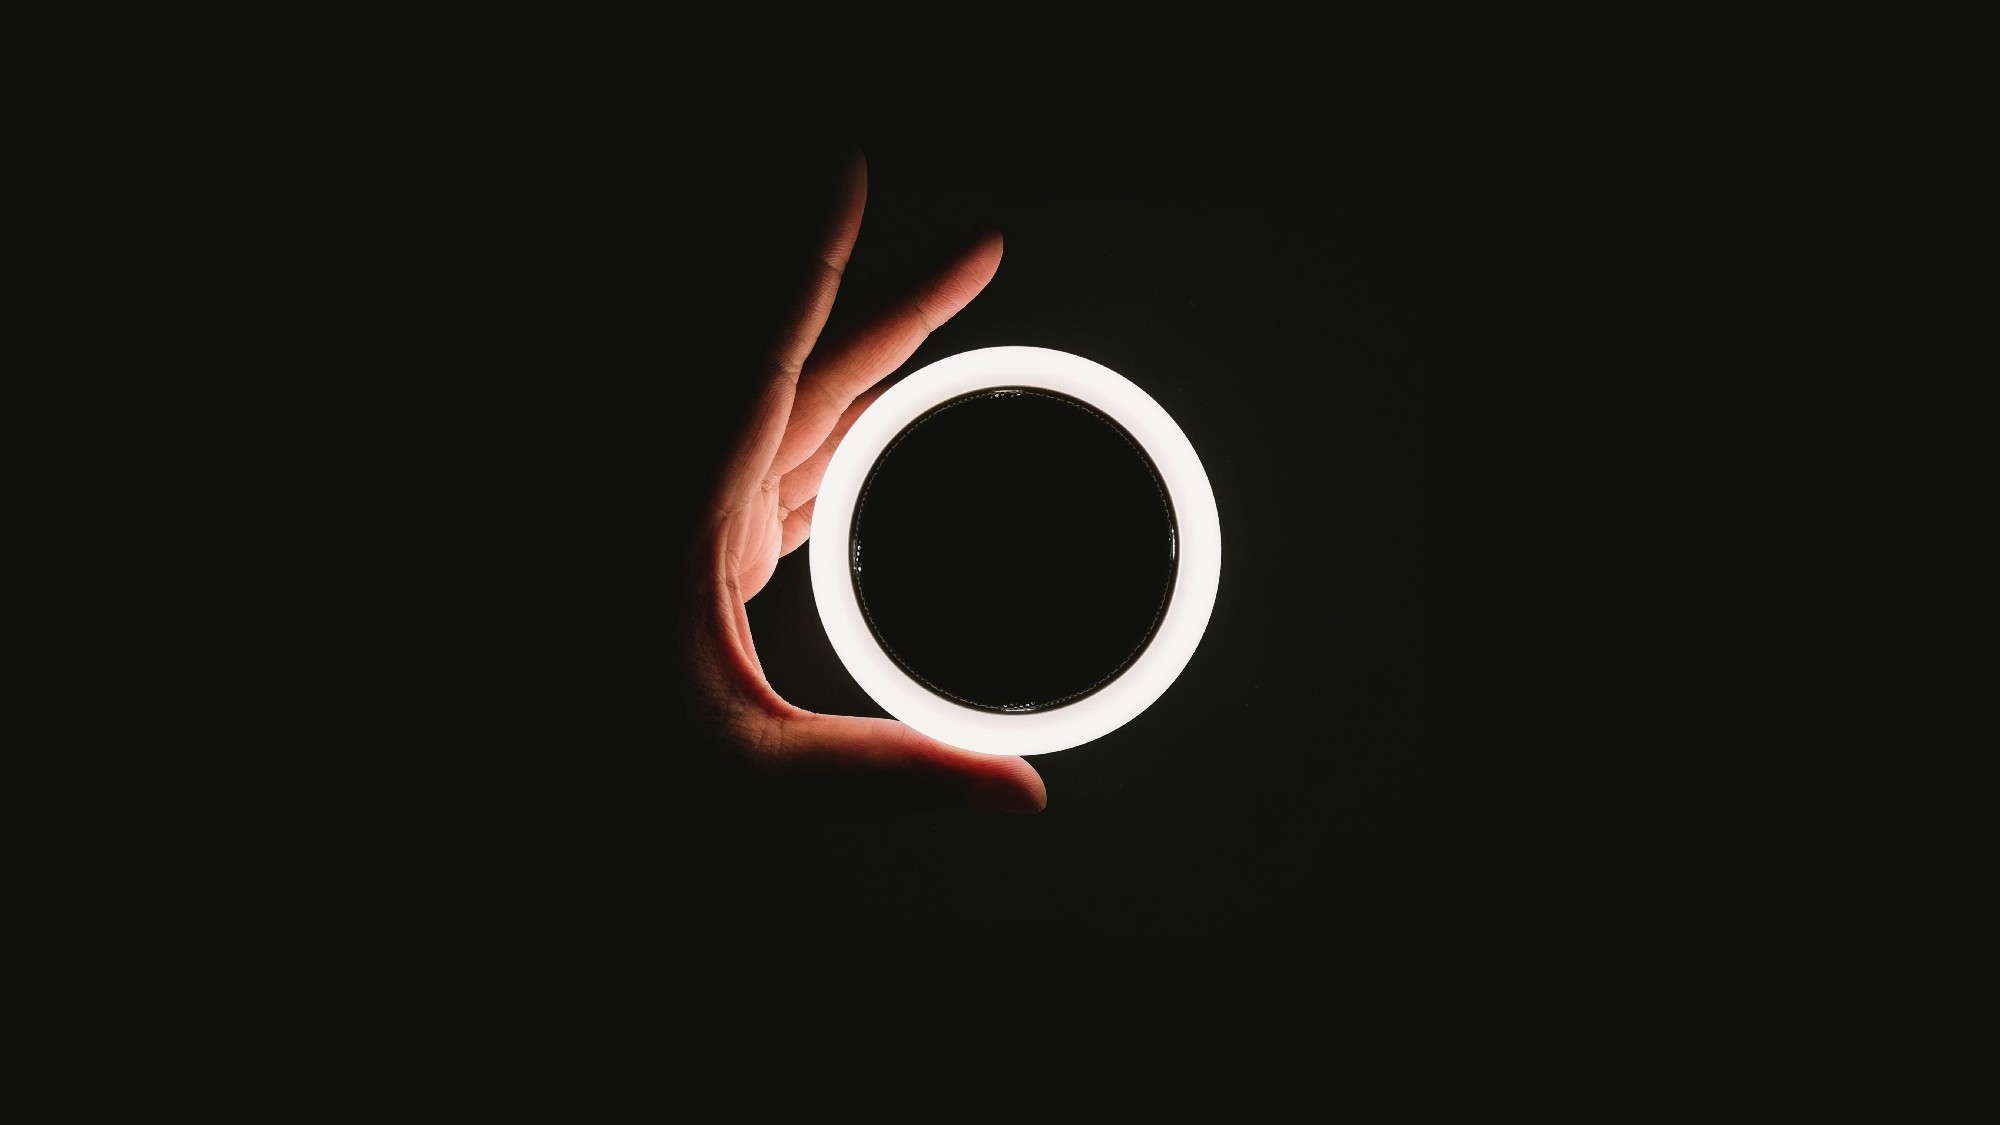 Hand holding large ring of light.